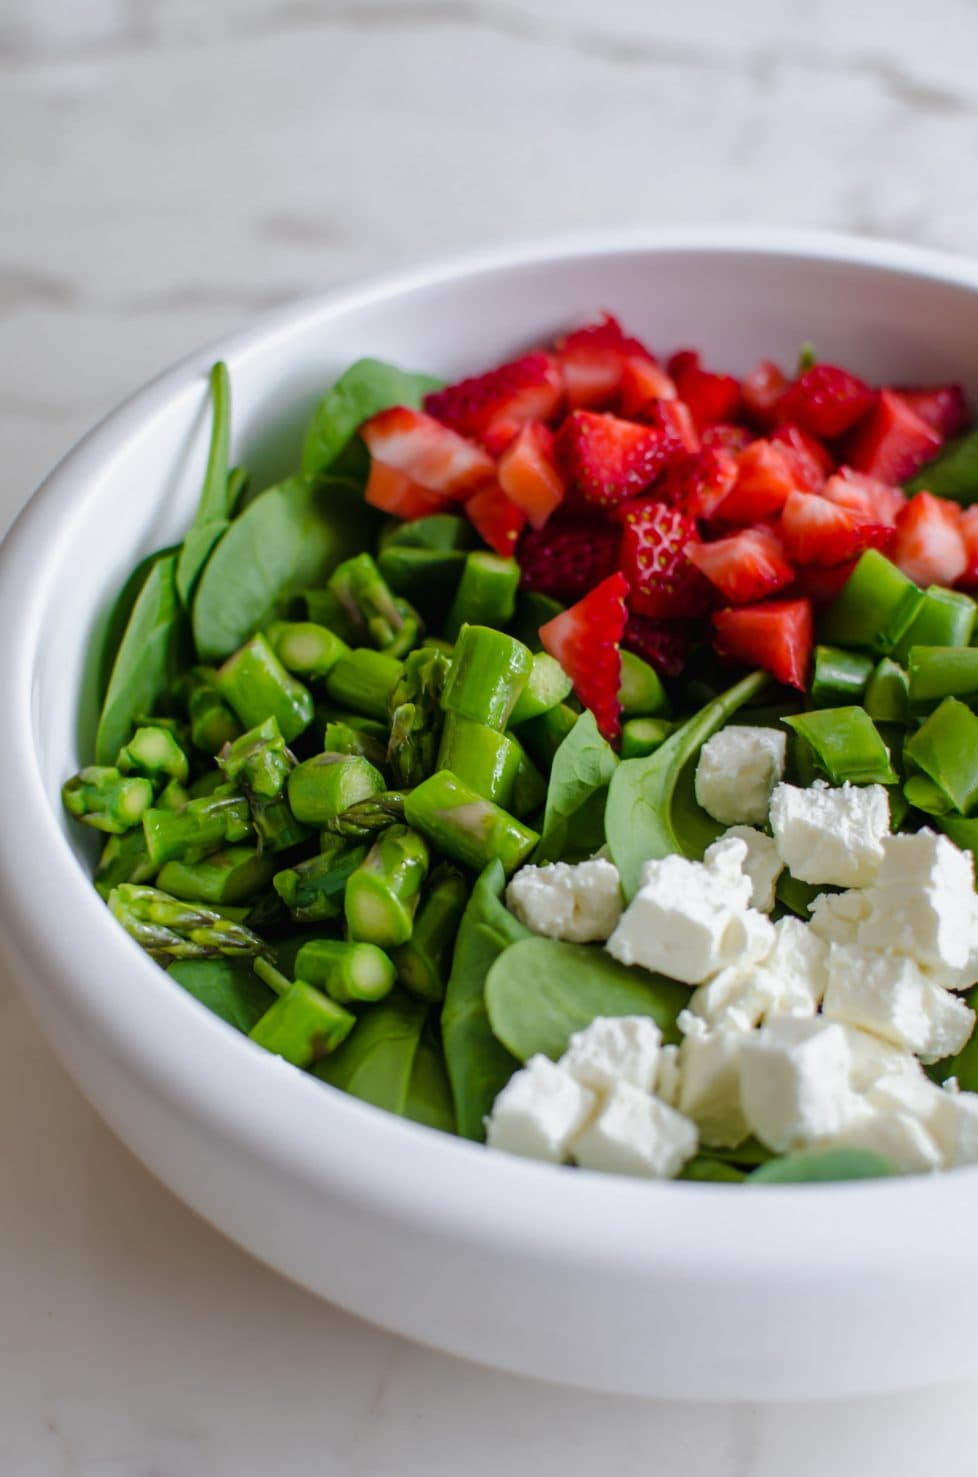 A white bowl with salad.